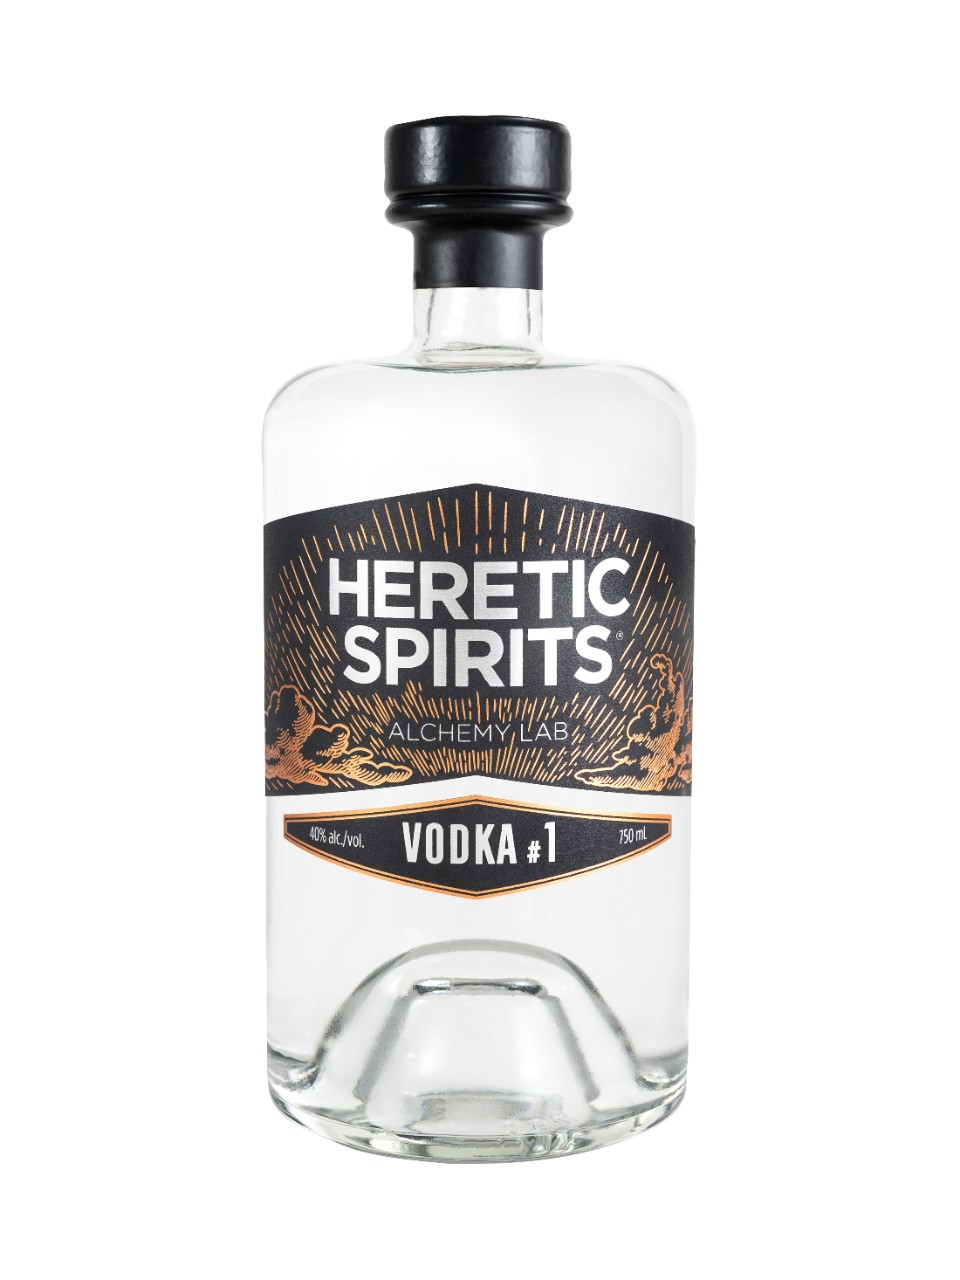 Heretic Spirits Vodka #1 from LCBO